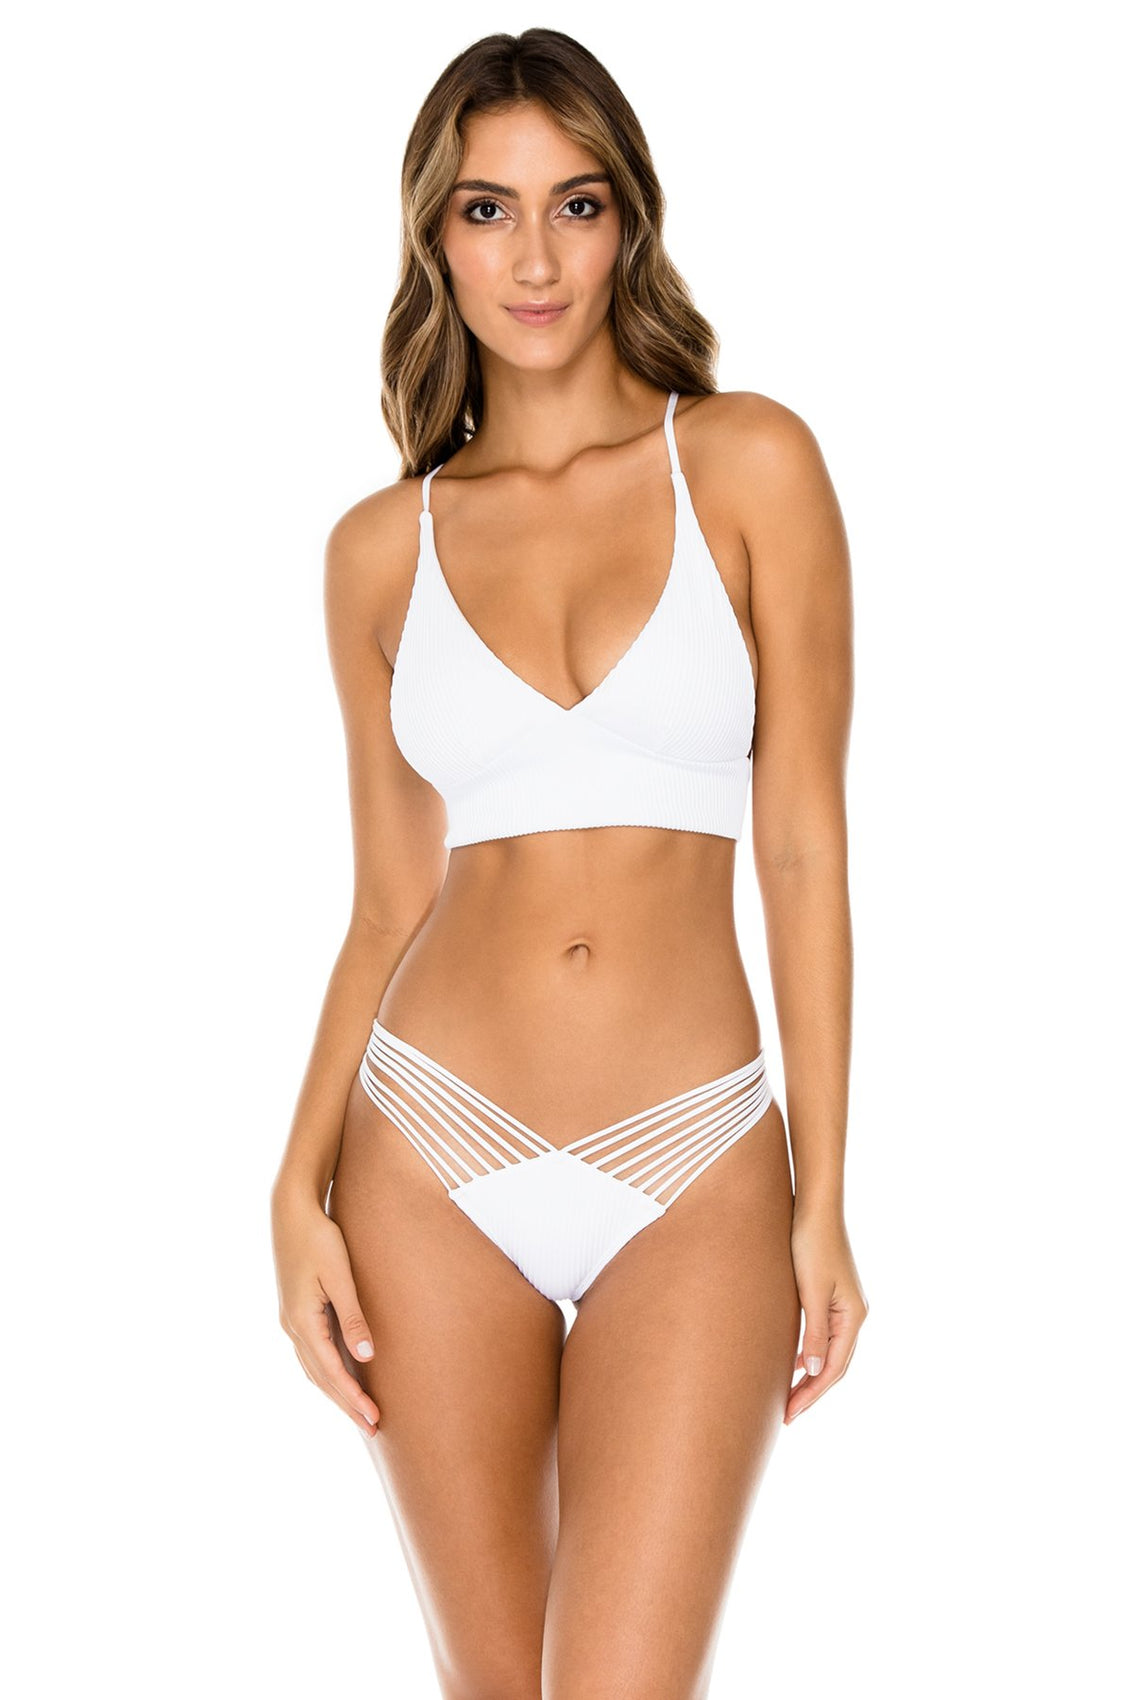 COSTA DEL SOL - Cross Back Bustier Top & Strappy Brazilian Ruched Back Bottom • White (1166428864556)